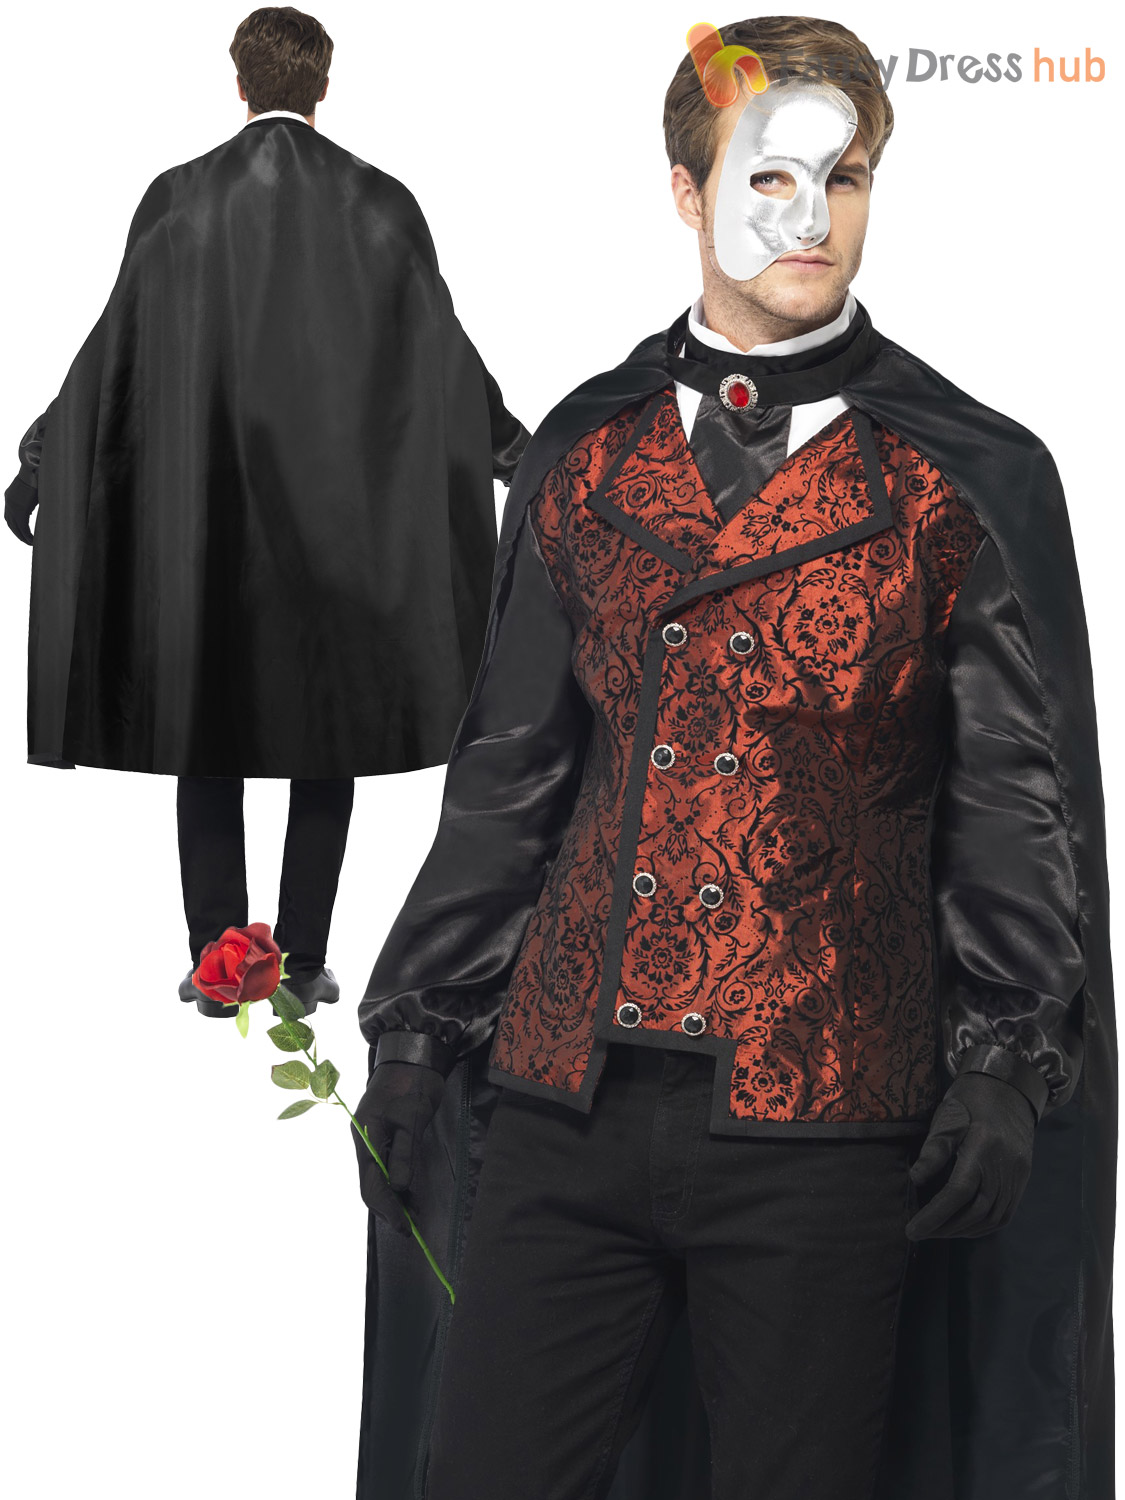 Masquerade / Costumes Masquerade party outfit Masquerade Men Venetian masquerade Masquerade dresses Venetian masks HALLOWEEN MASQUERADE Halloween costumes Black Masquerade Masks Fashion Plates Boots Black Clothes All Black Suit Dancing Carnival of venice Black People Venice Mask Victorian Masks Gothic Rock Shower Venetian costumes Gothic Prom.